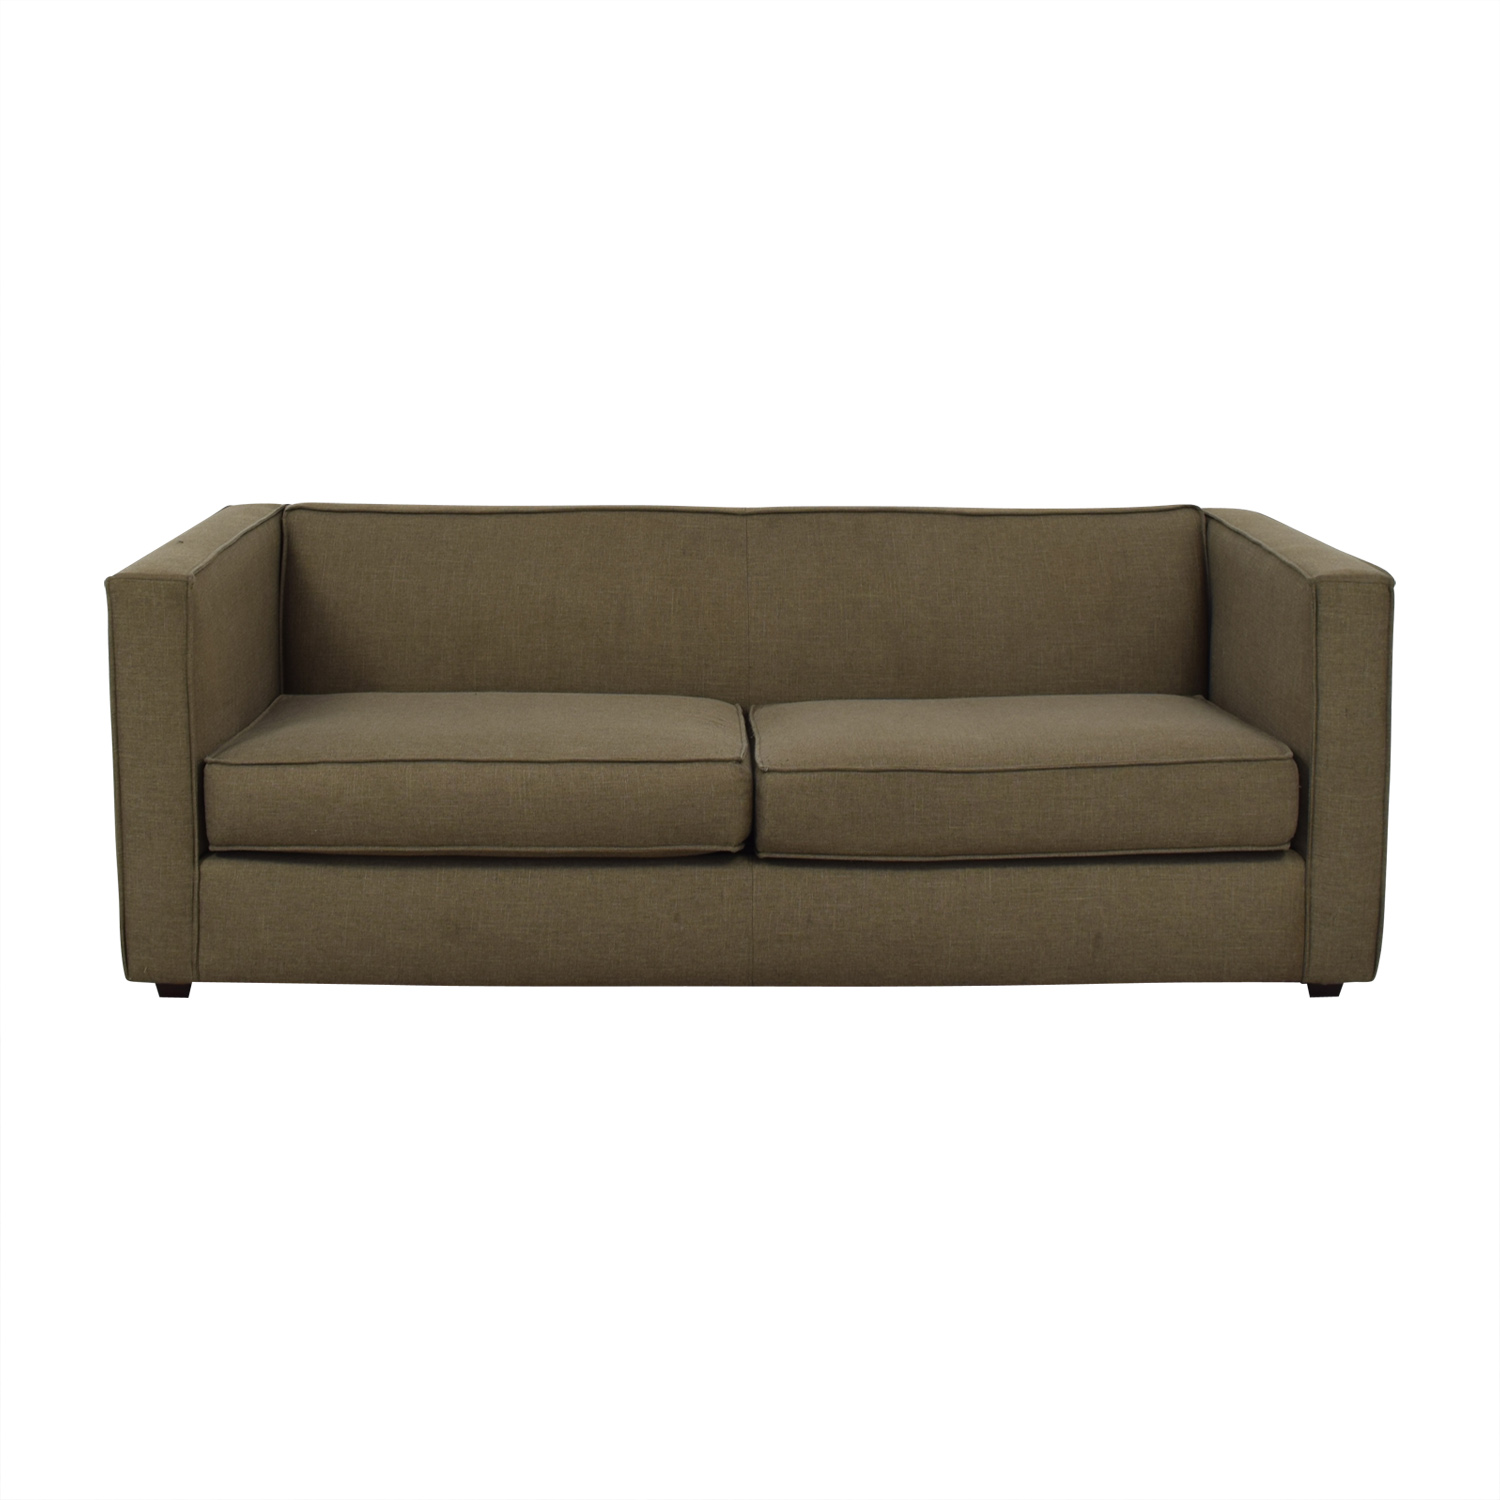 CB2 CB2 Club Sofa discount